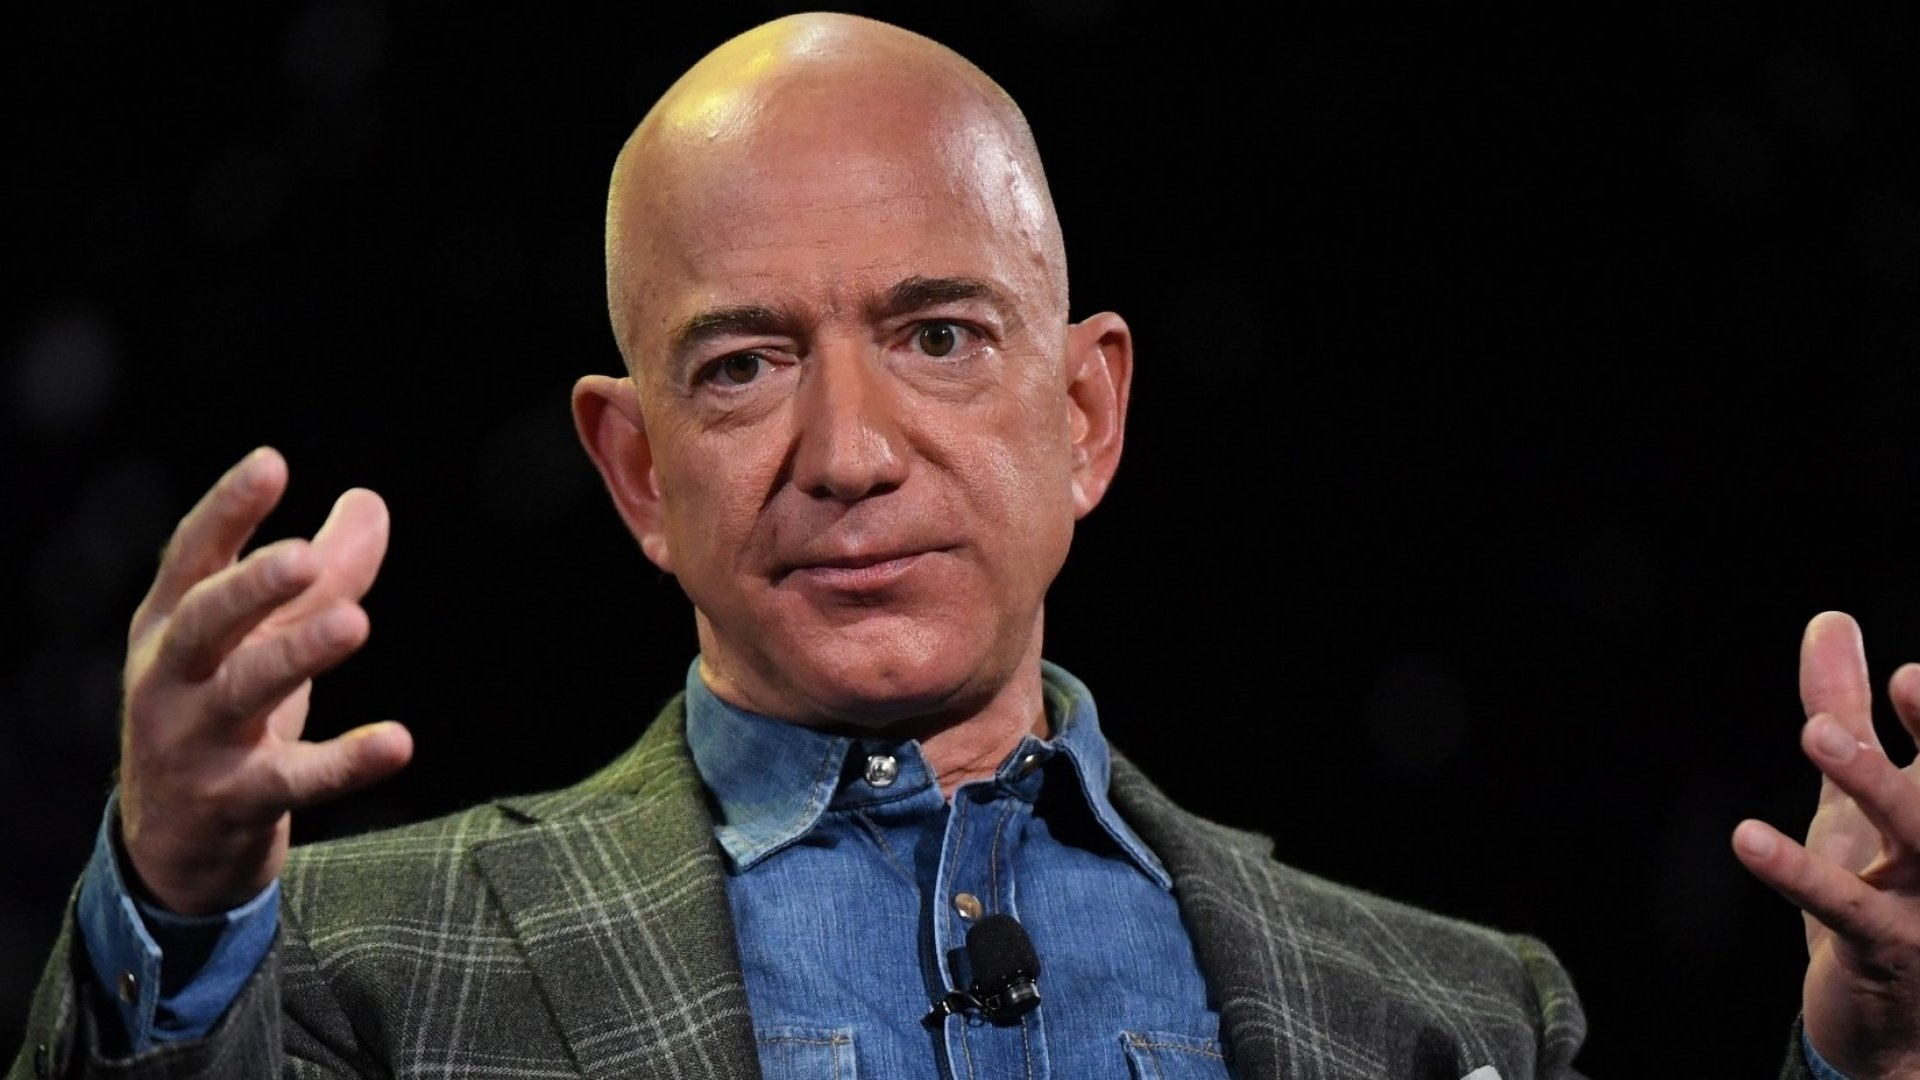 Amazon's $690,000 Donation to Australian Wildfire Relief Is a Massive PR Failure. Here's Why